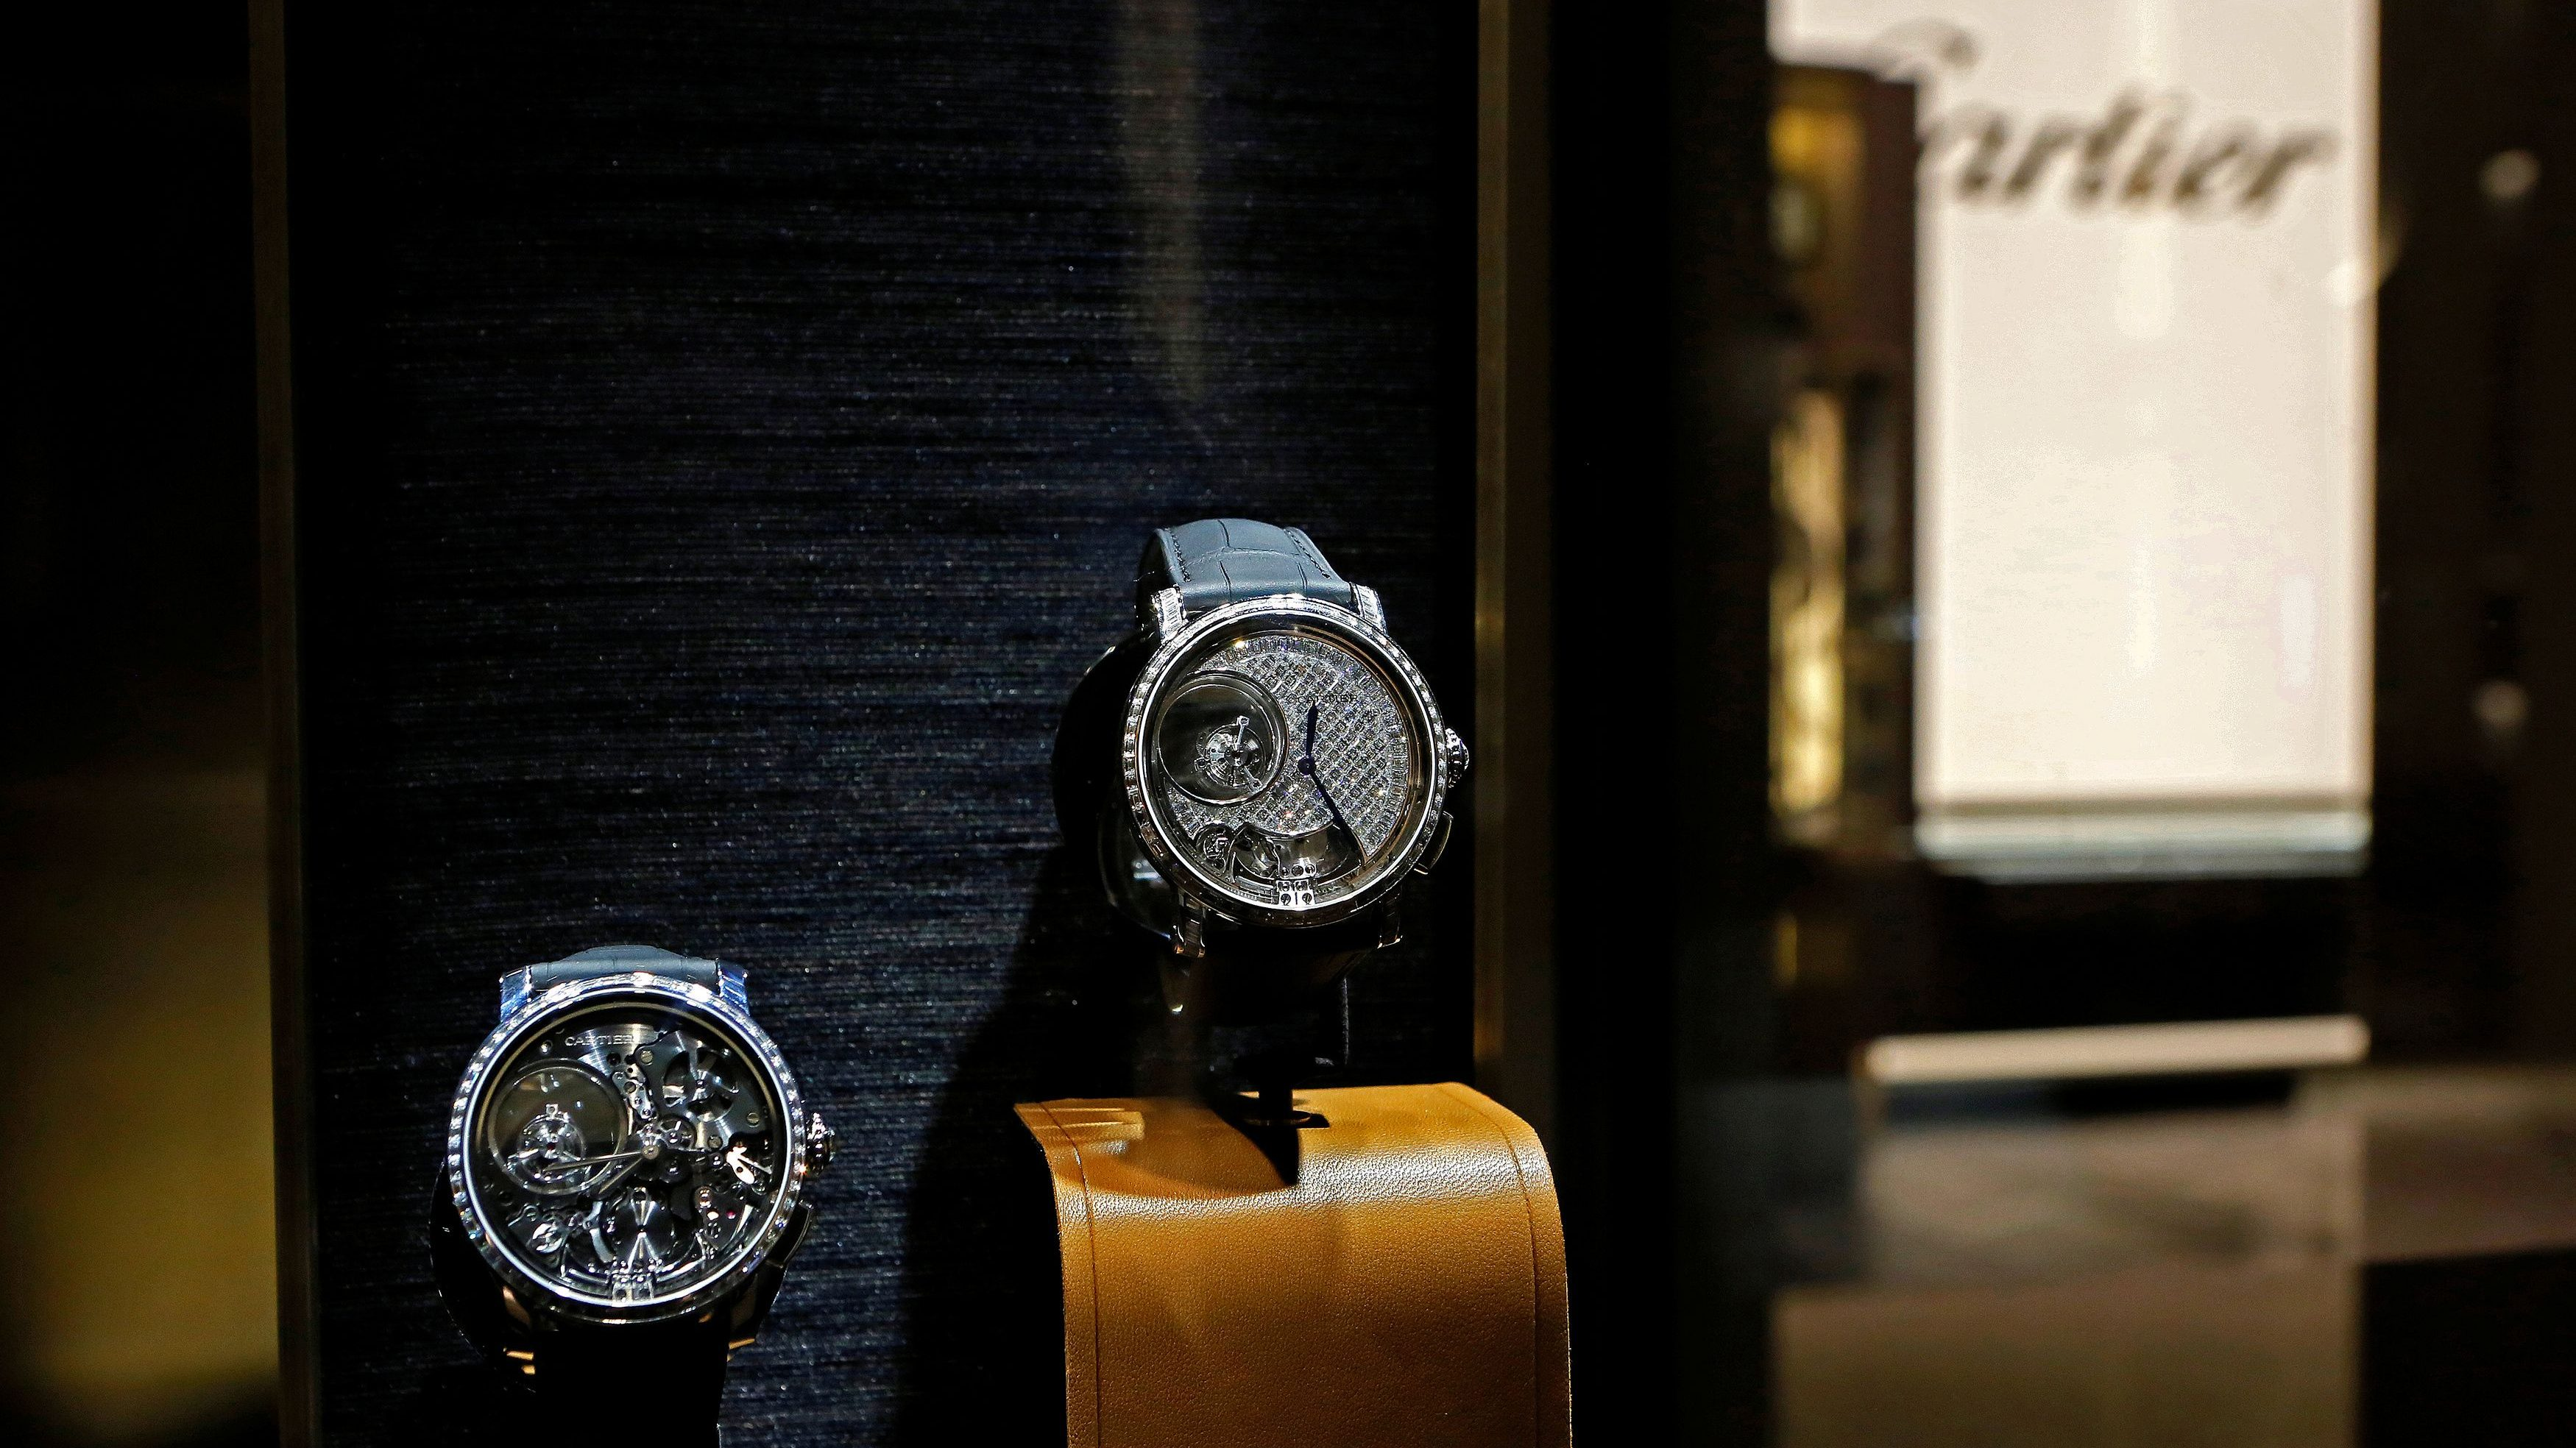 Watches models by Cartier are pictured during the opening day of the Salon International de la Haute Horlogerie (SIHH) watch fair for Richemont brands in Geneva, Switzerland January 16, 2017. REUTERS/Pierre Albouy - RC1EDA8C0410